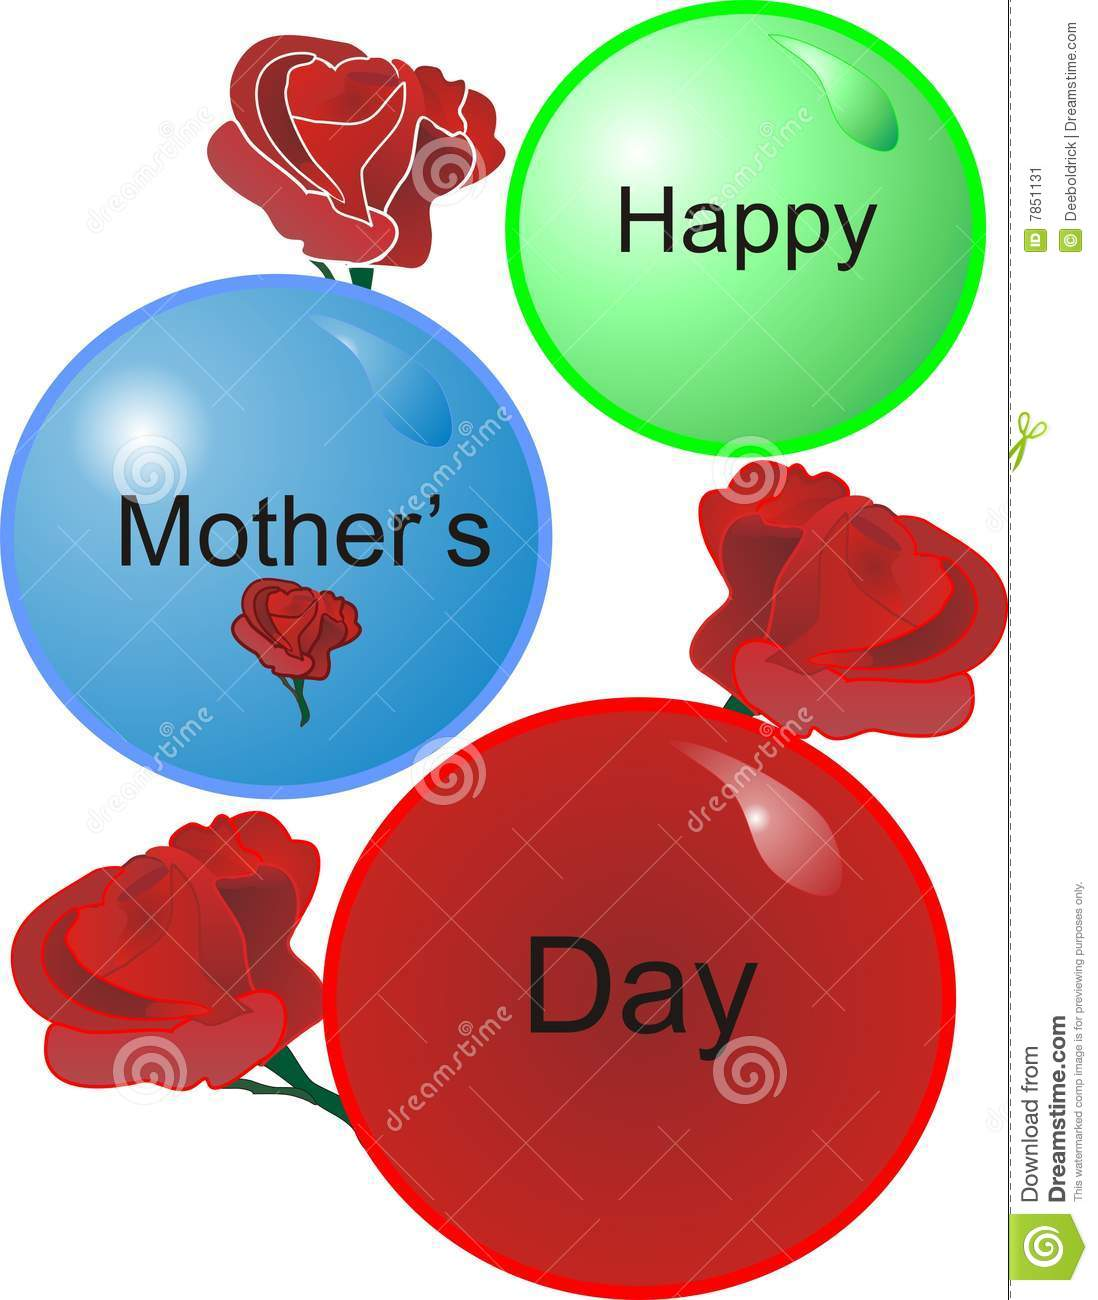 picture Happy Step Mothers Day Images dreamstime com